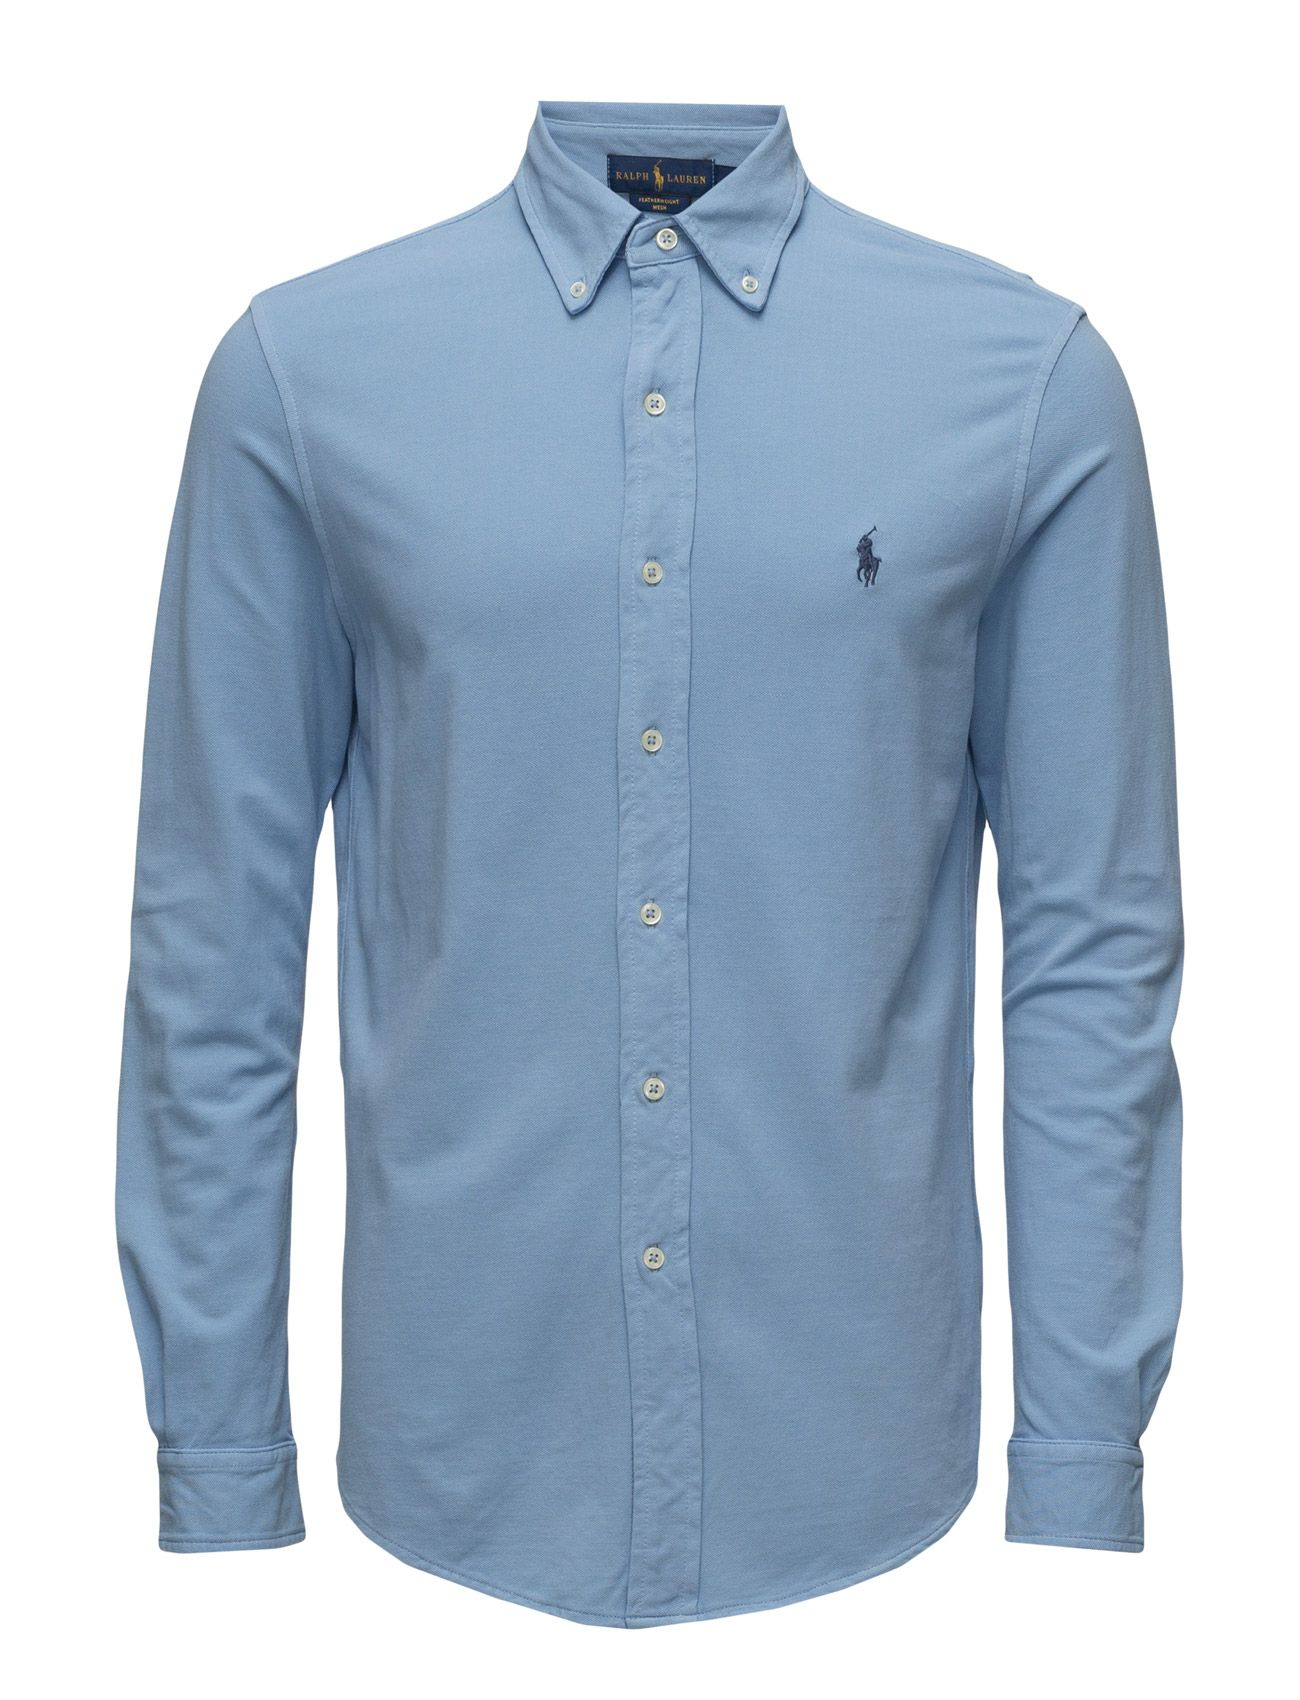 polo ralph lauren featherweight mesh shirt course blue men tops shirts  casual,romance by ralph